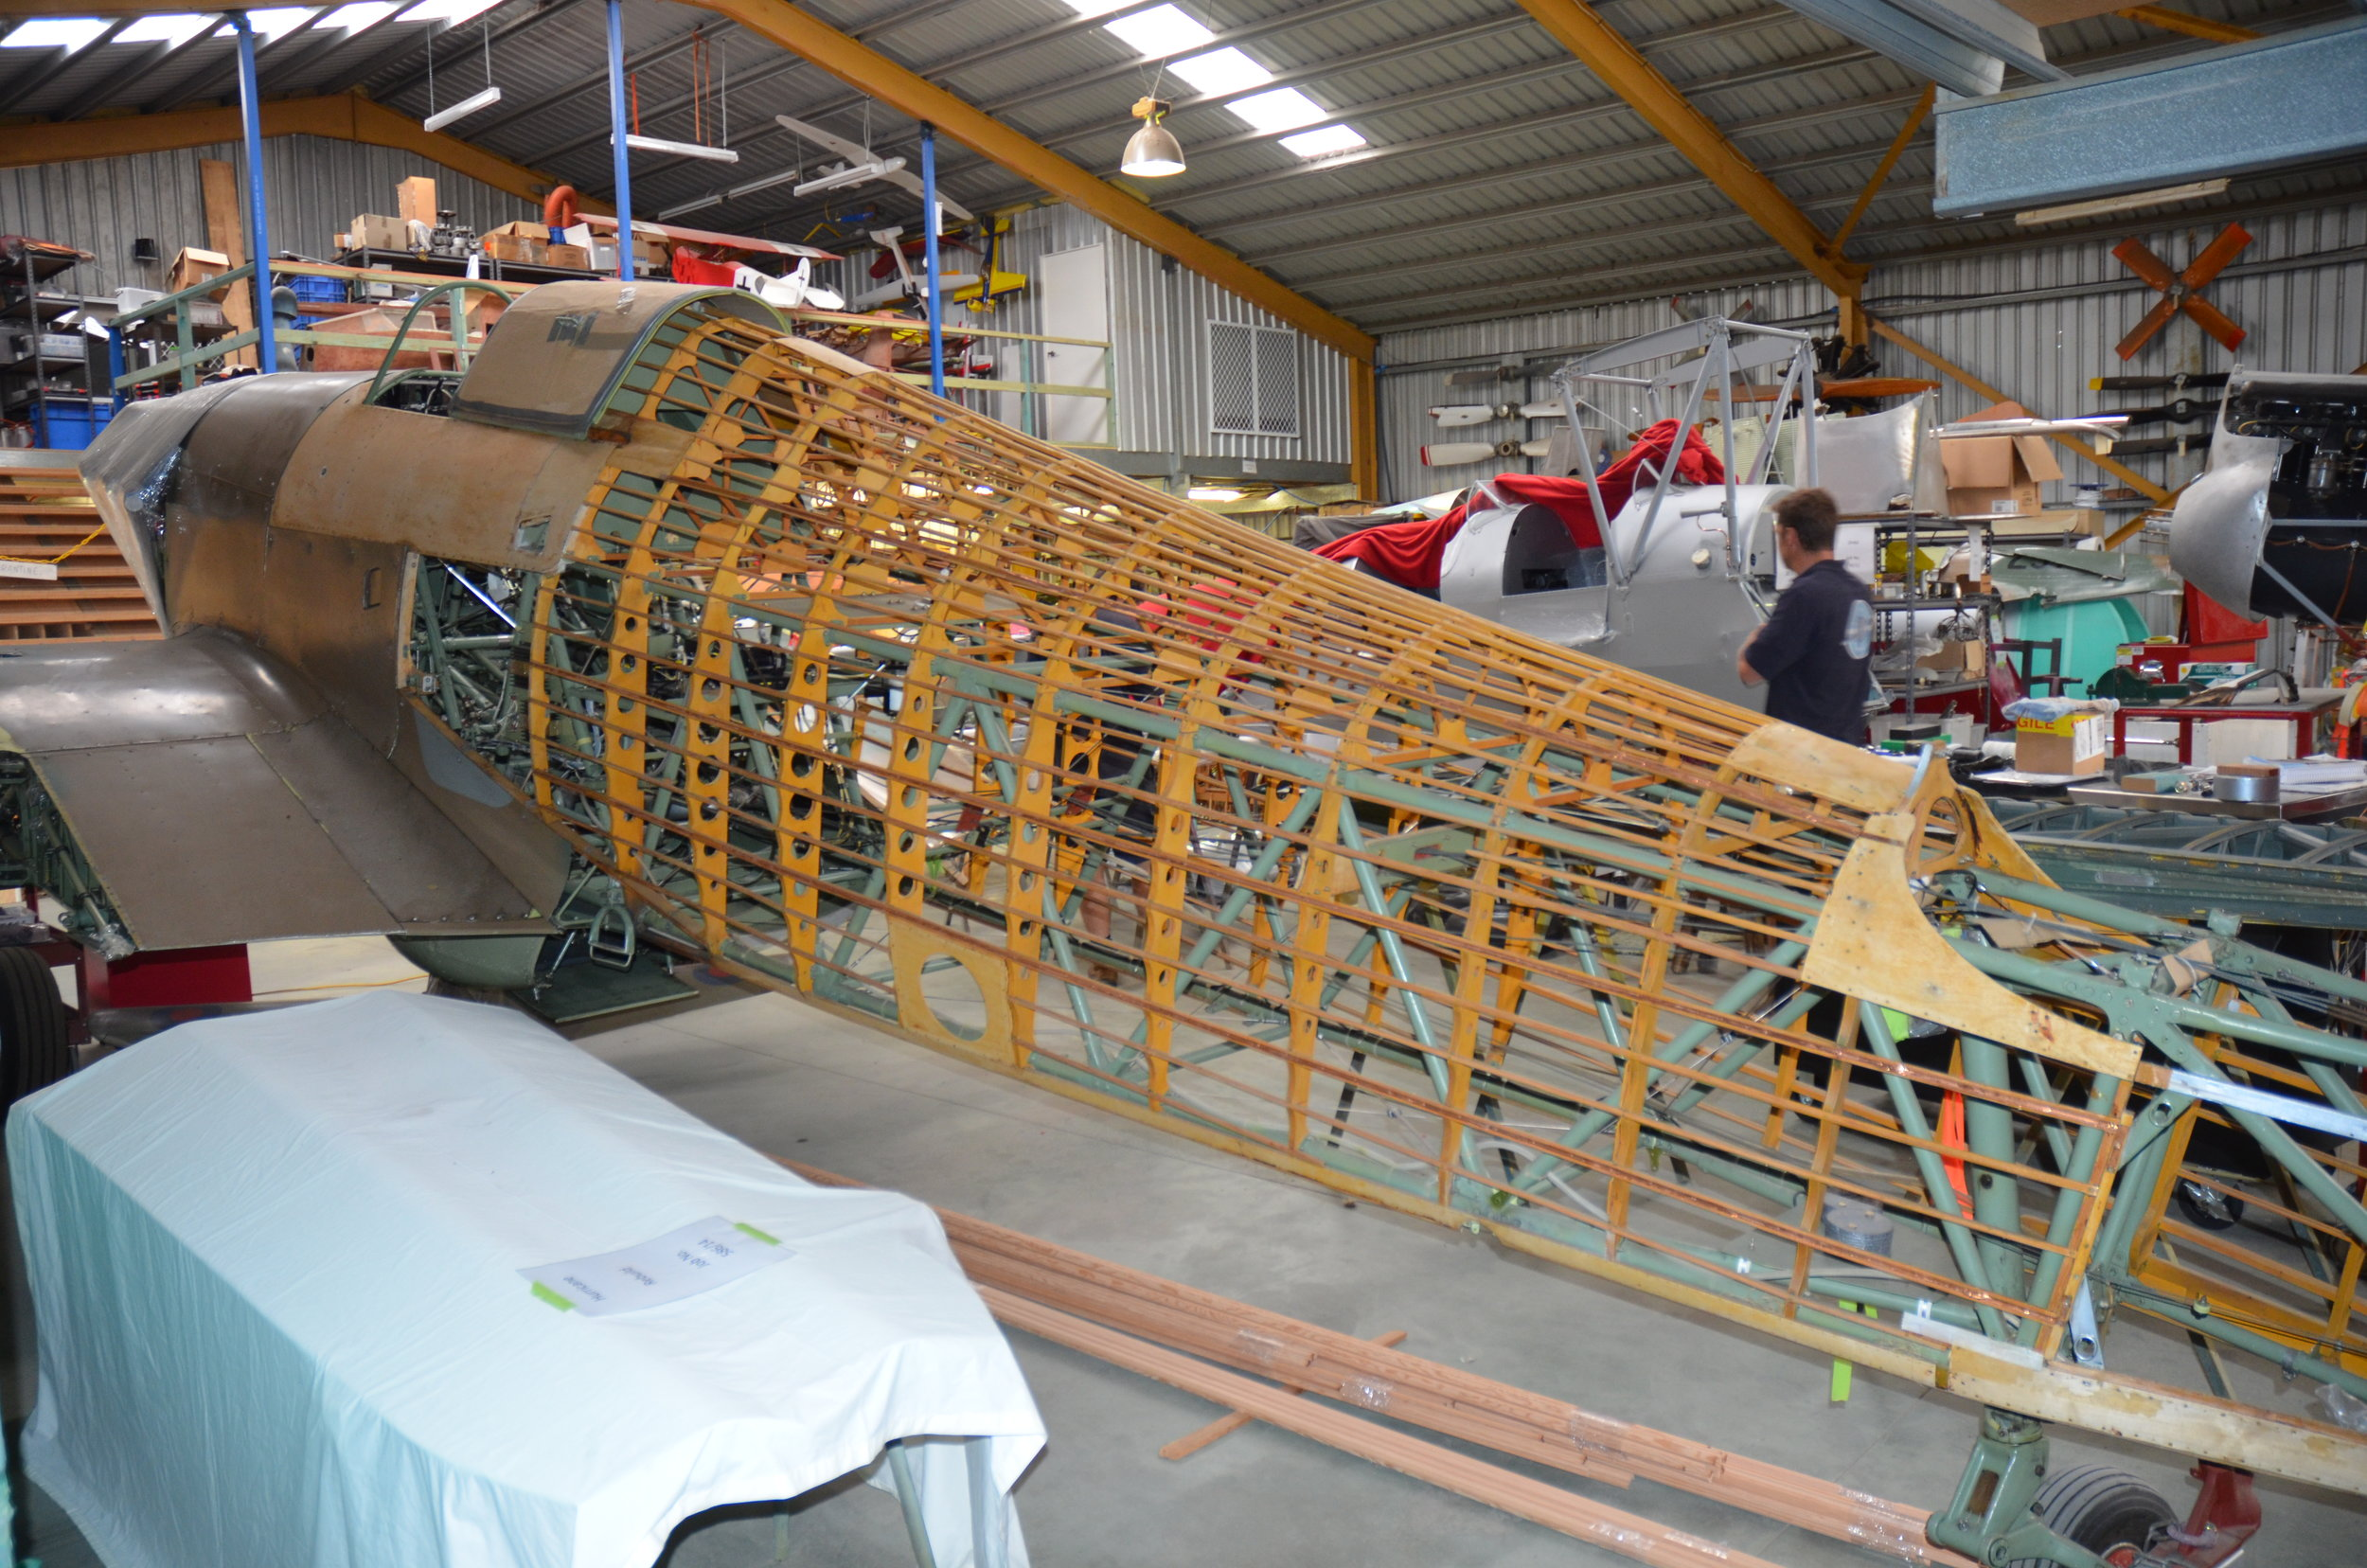 Fuselage undergoing restoration of the wooden structure.